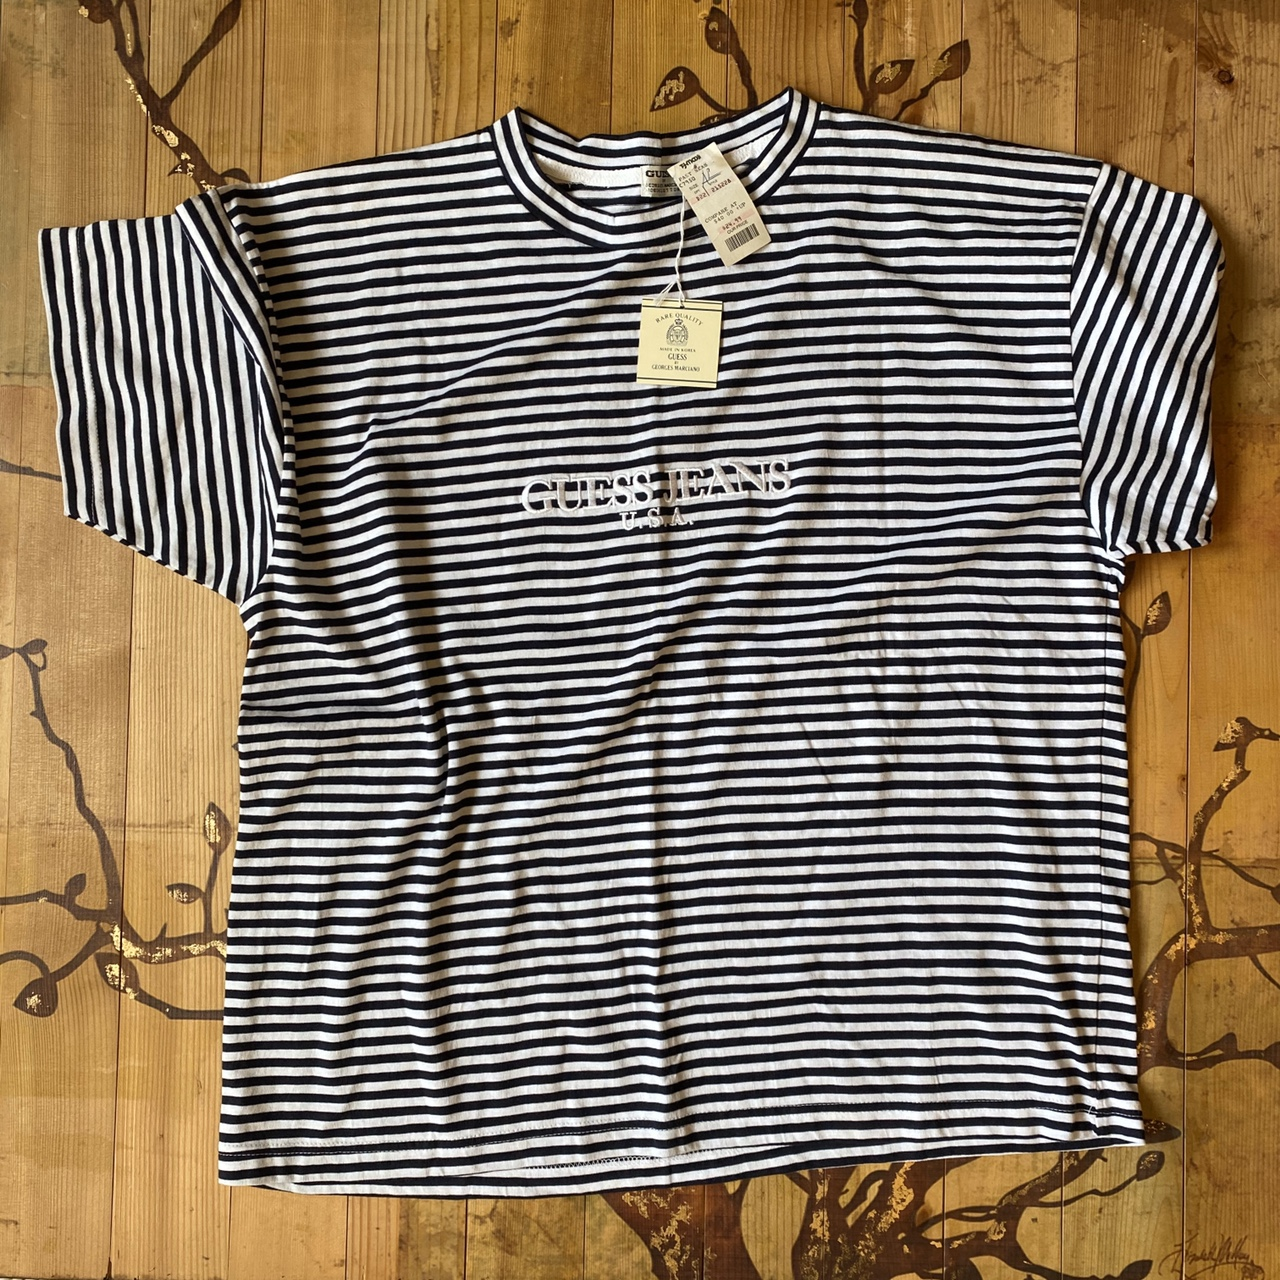 Product Image 1 - Vintage guess striped tee Trust me